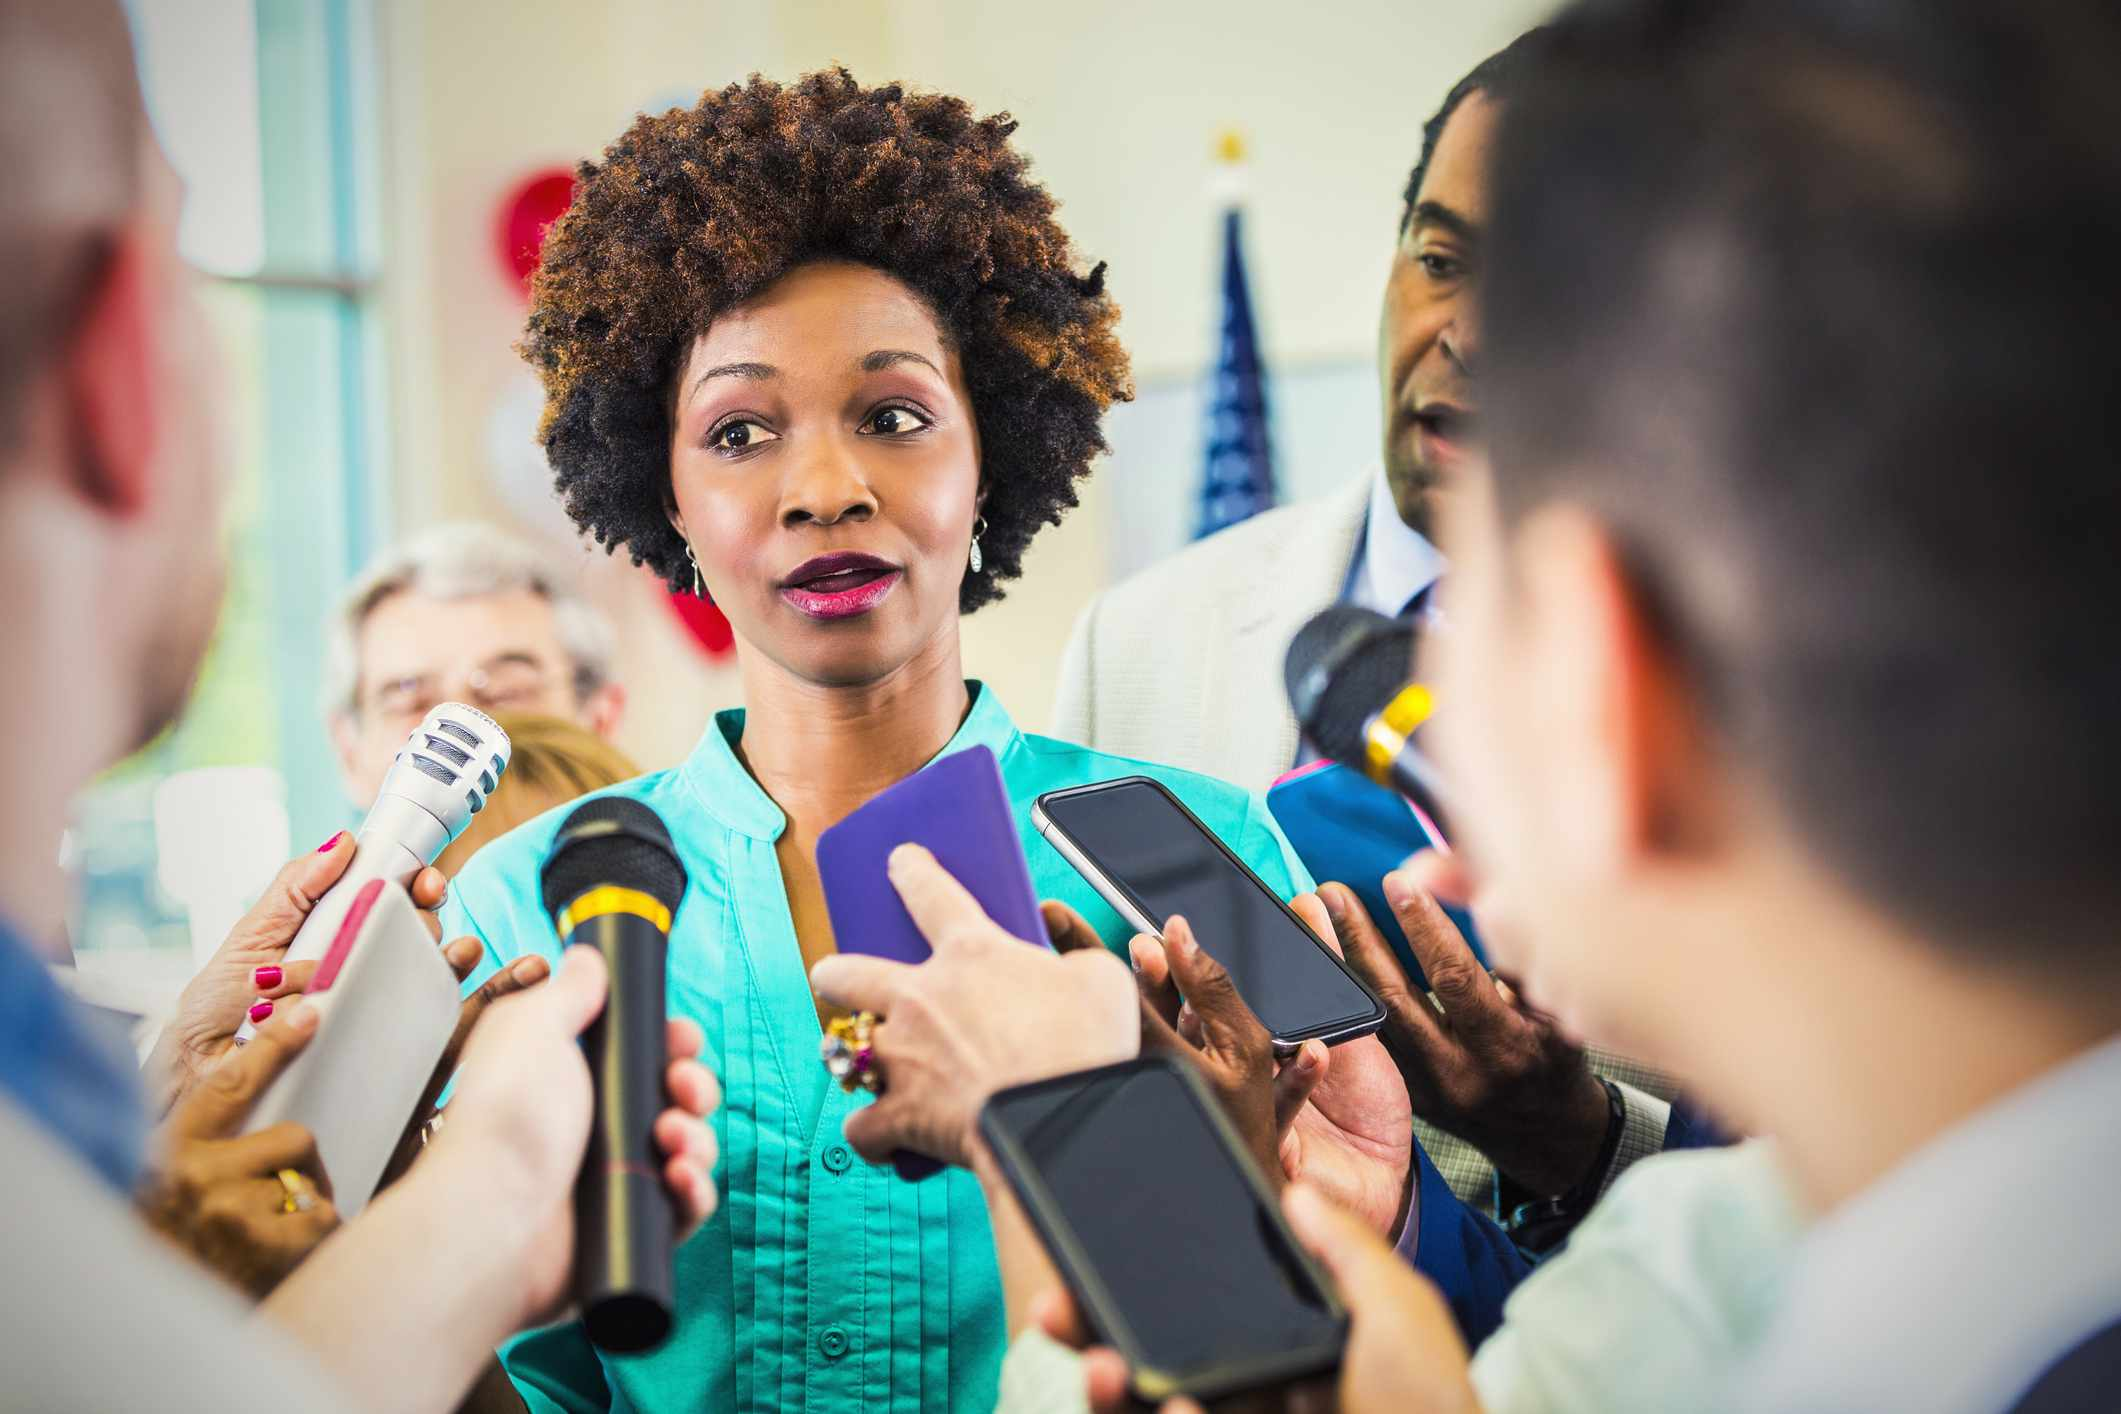 African American woman being interviewed by media.